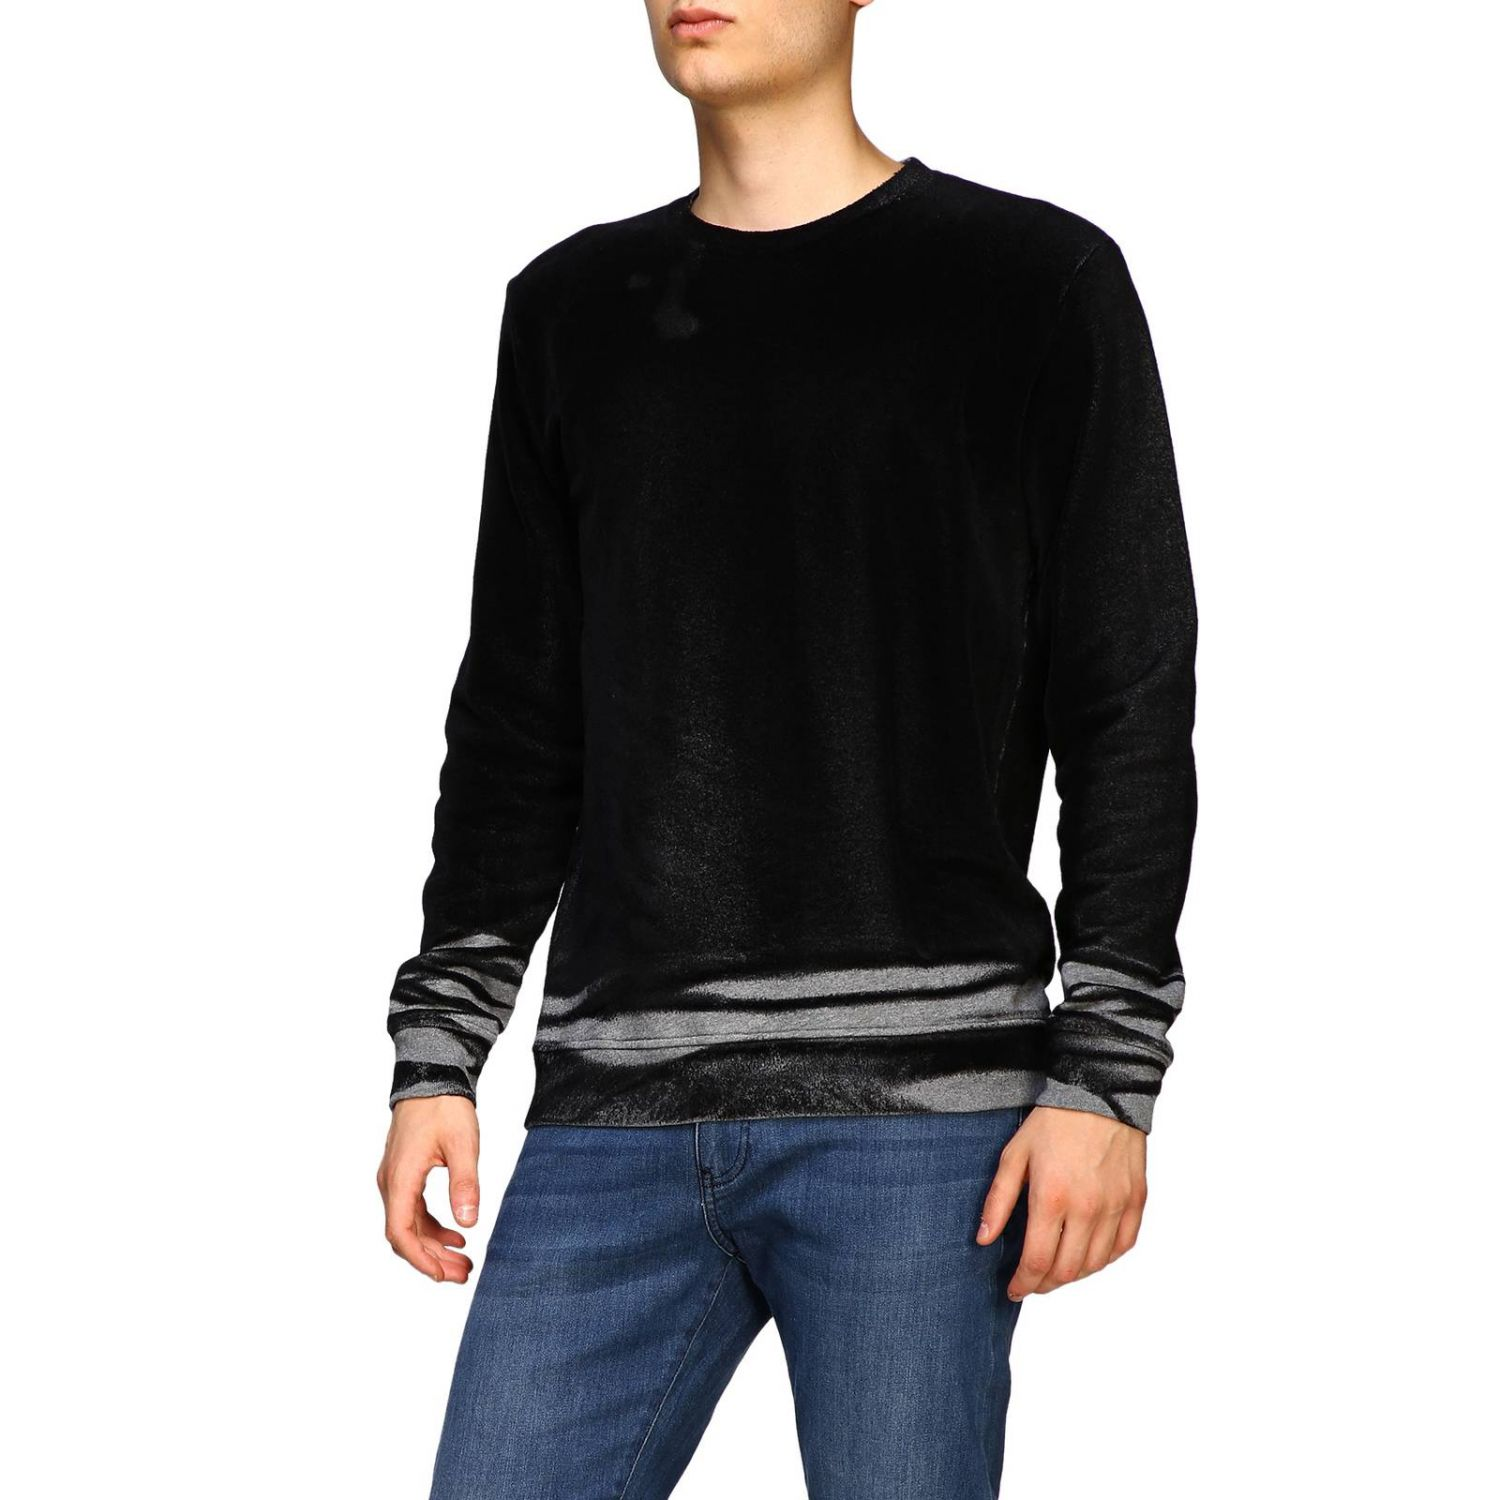 Sweater men N° 21 black 4